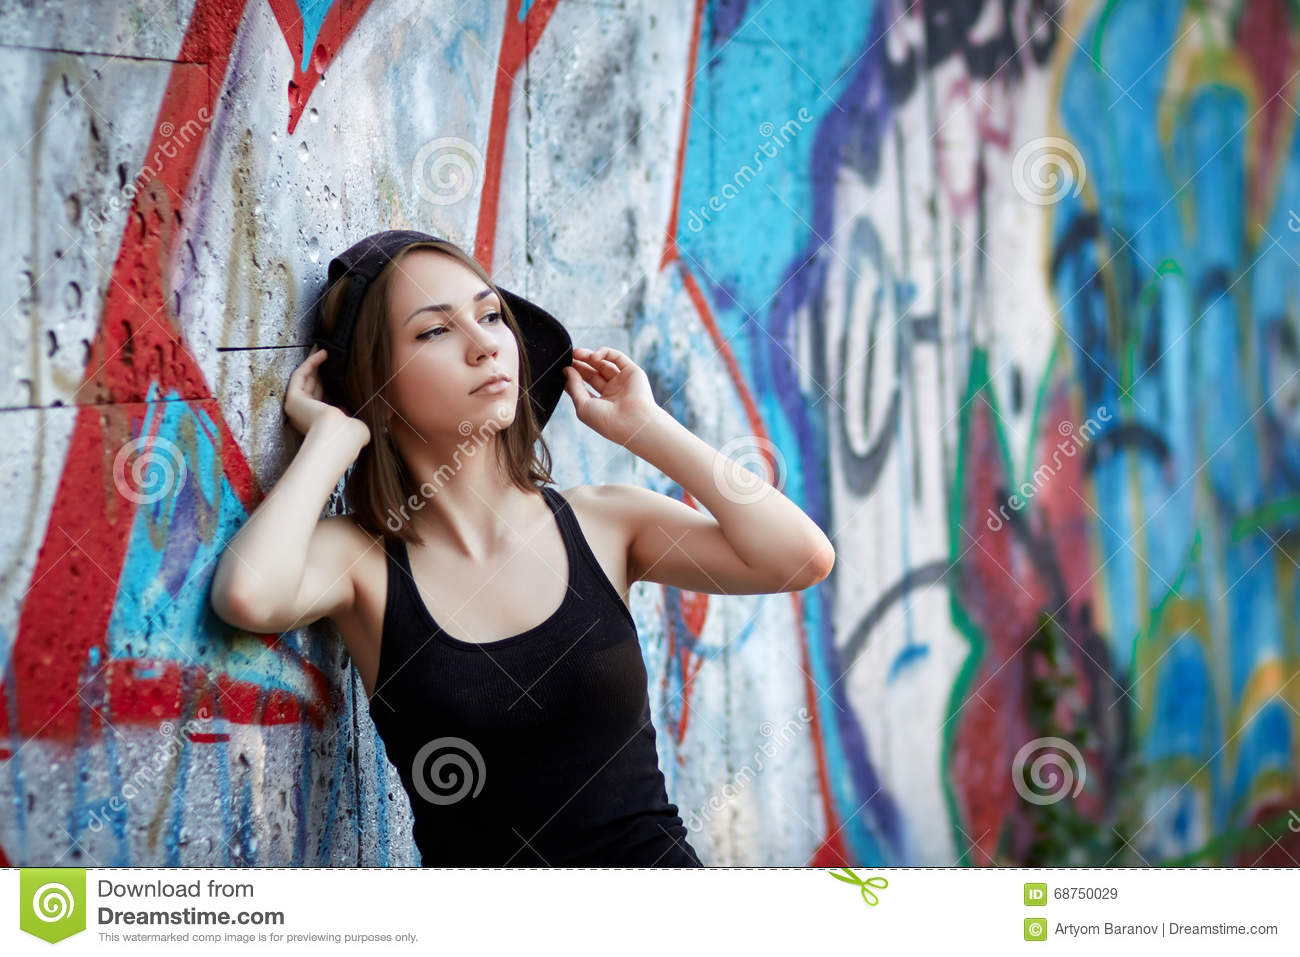 Young girl on graffiti background